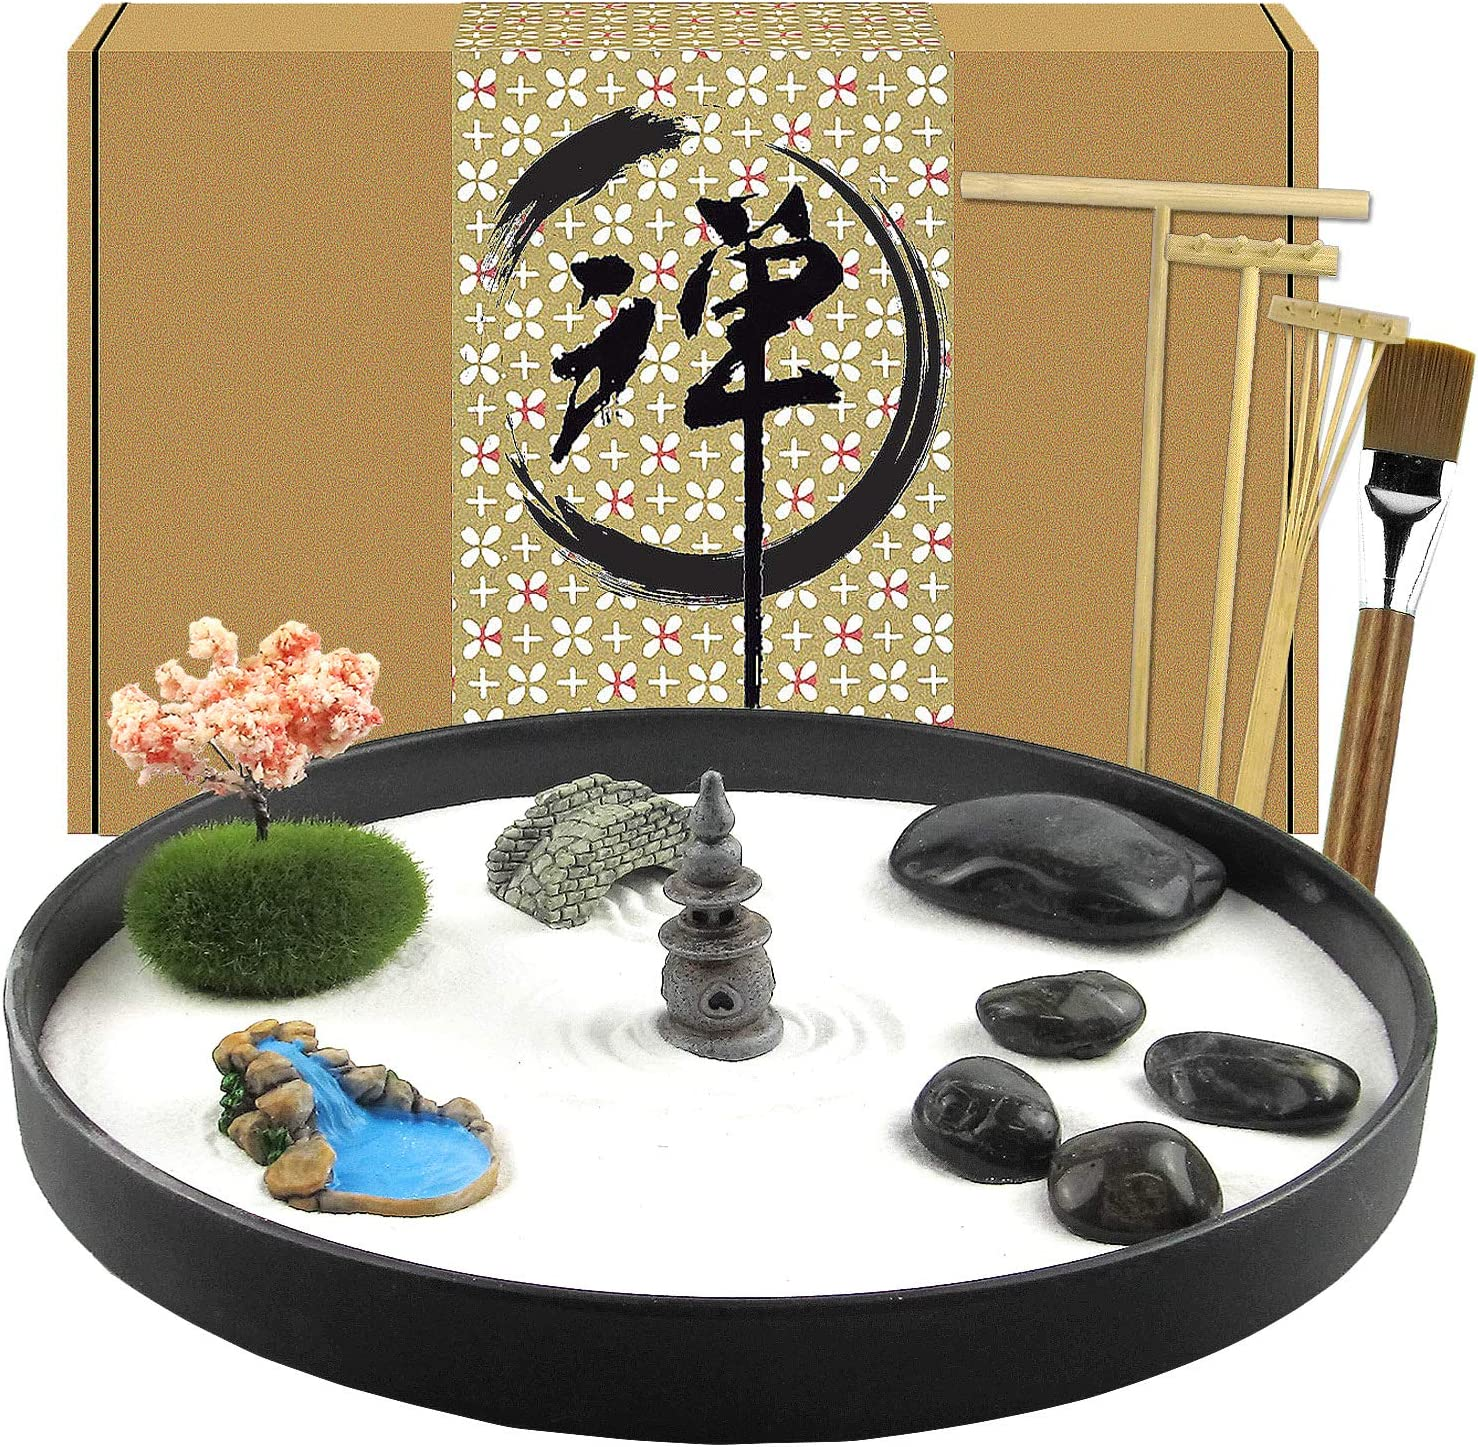 Artcome Japanese Zen Sand Garden for Desk with Rake, Stand, Rocks and Mini Furnishing Articles - Office Table Accessories, Mini Zen Sand Garden Kit - Meditation Gifts